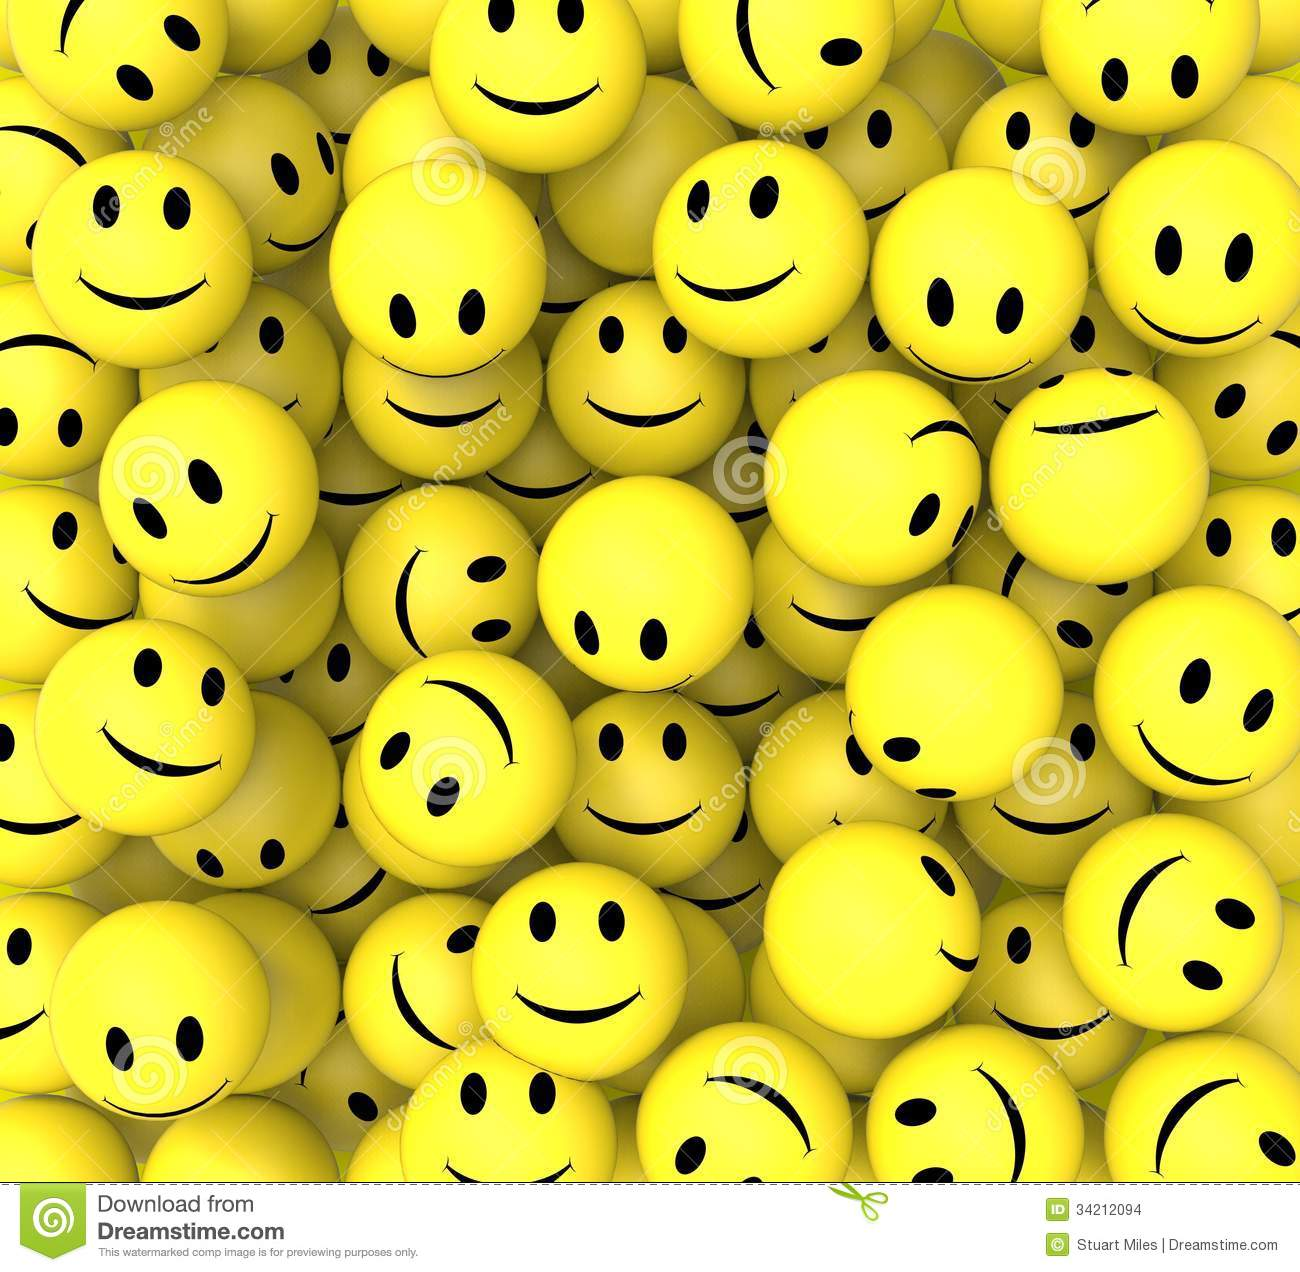 Clipart Yellow Smiley Faces